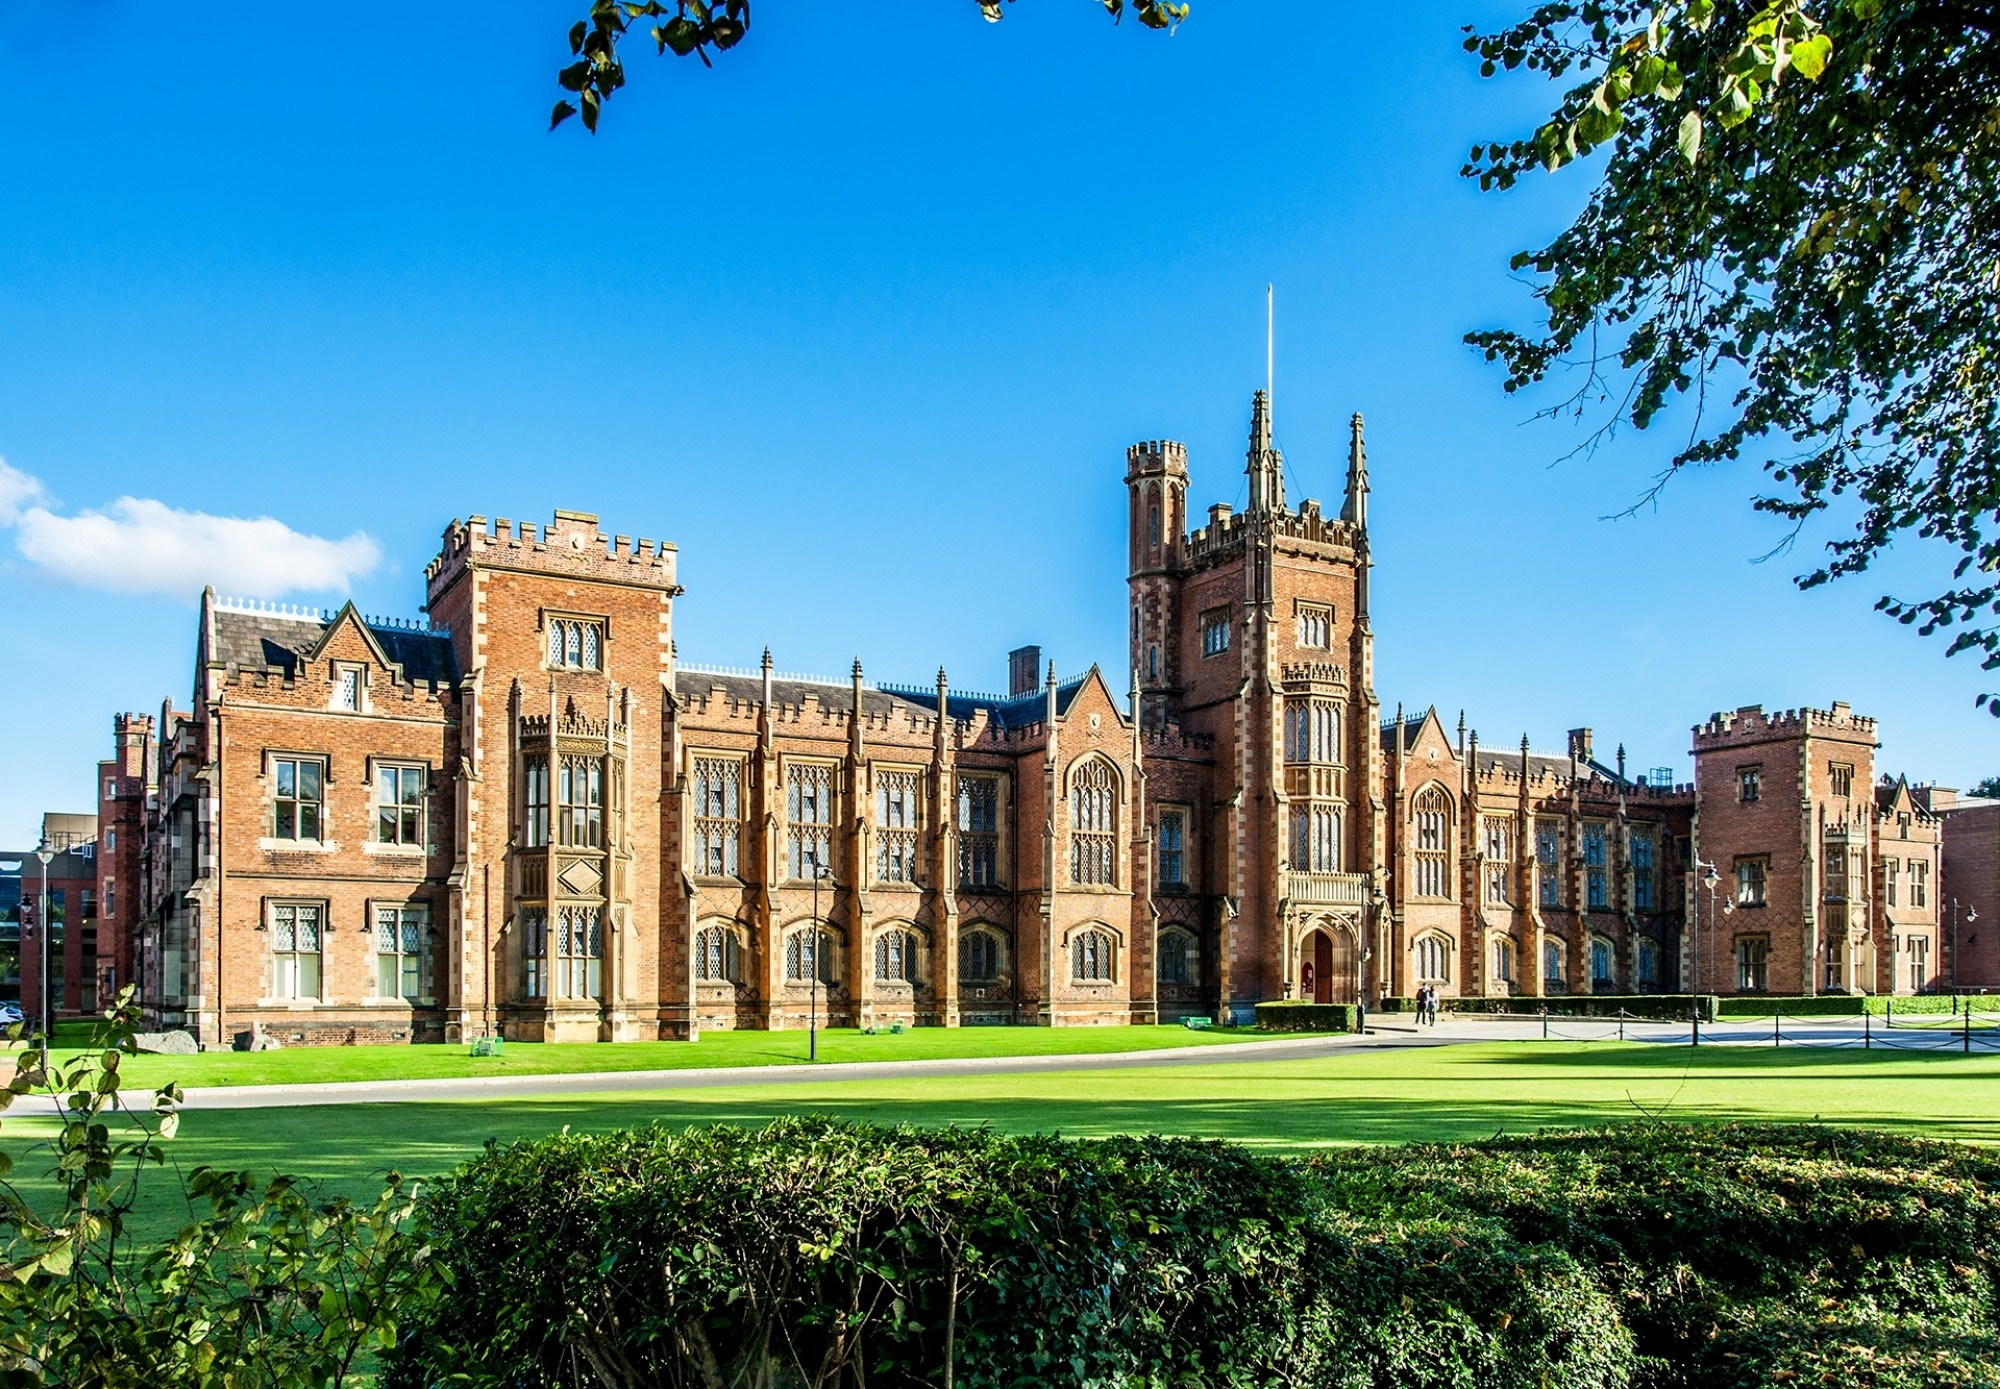 The-Queens-University-of-Belfast-with-a-grass-lawn-tree-branches-and-a-hedge-in-sunset-light